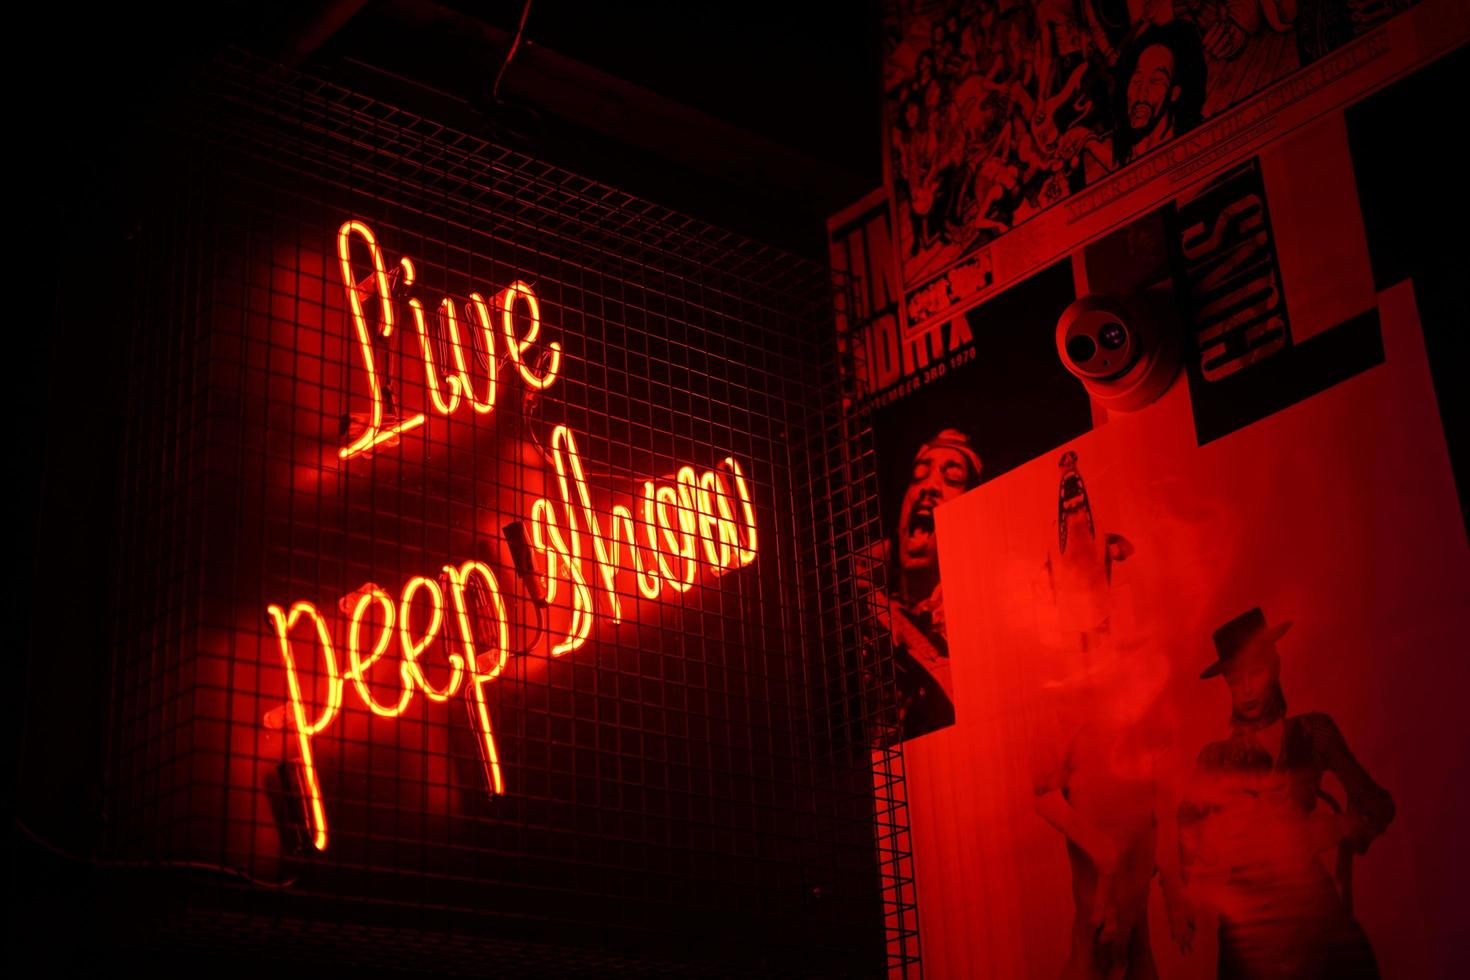 signalisation au néon live peep show photo